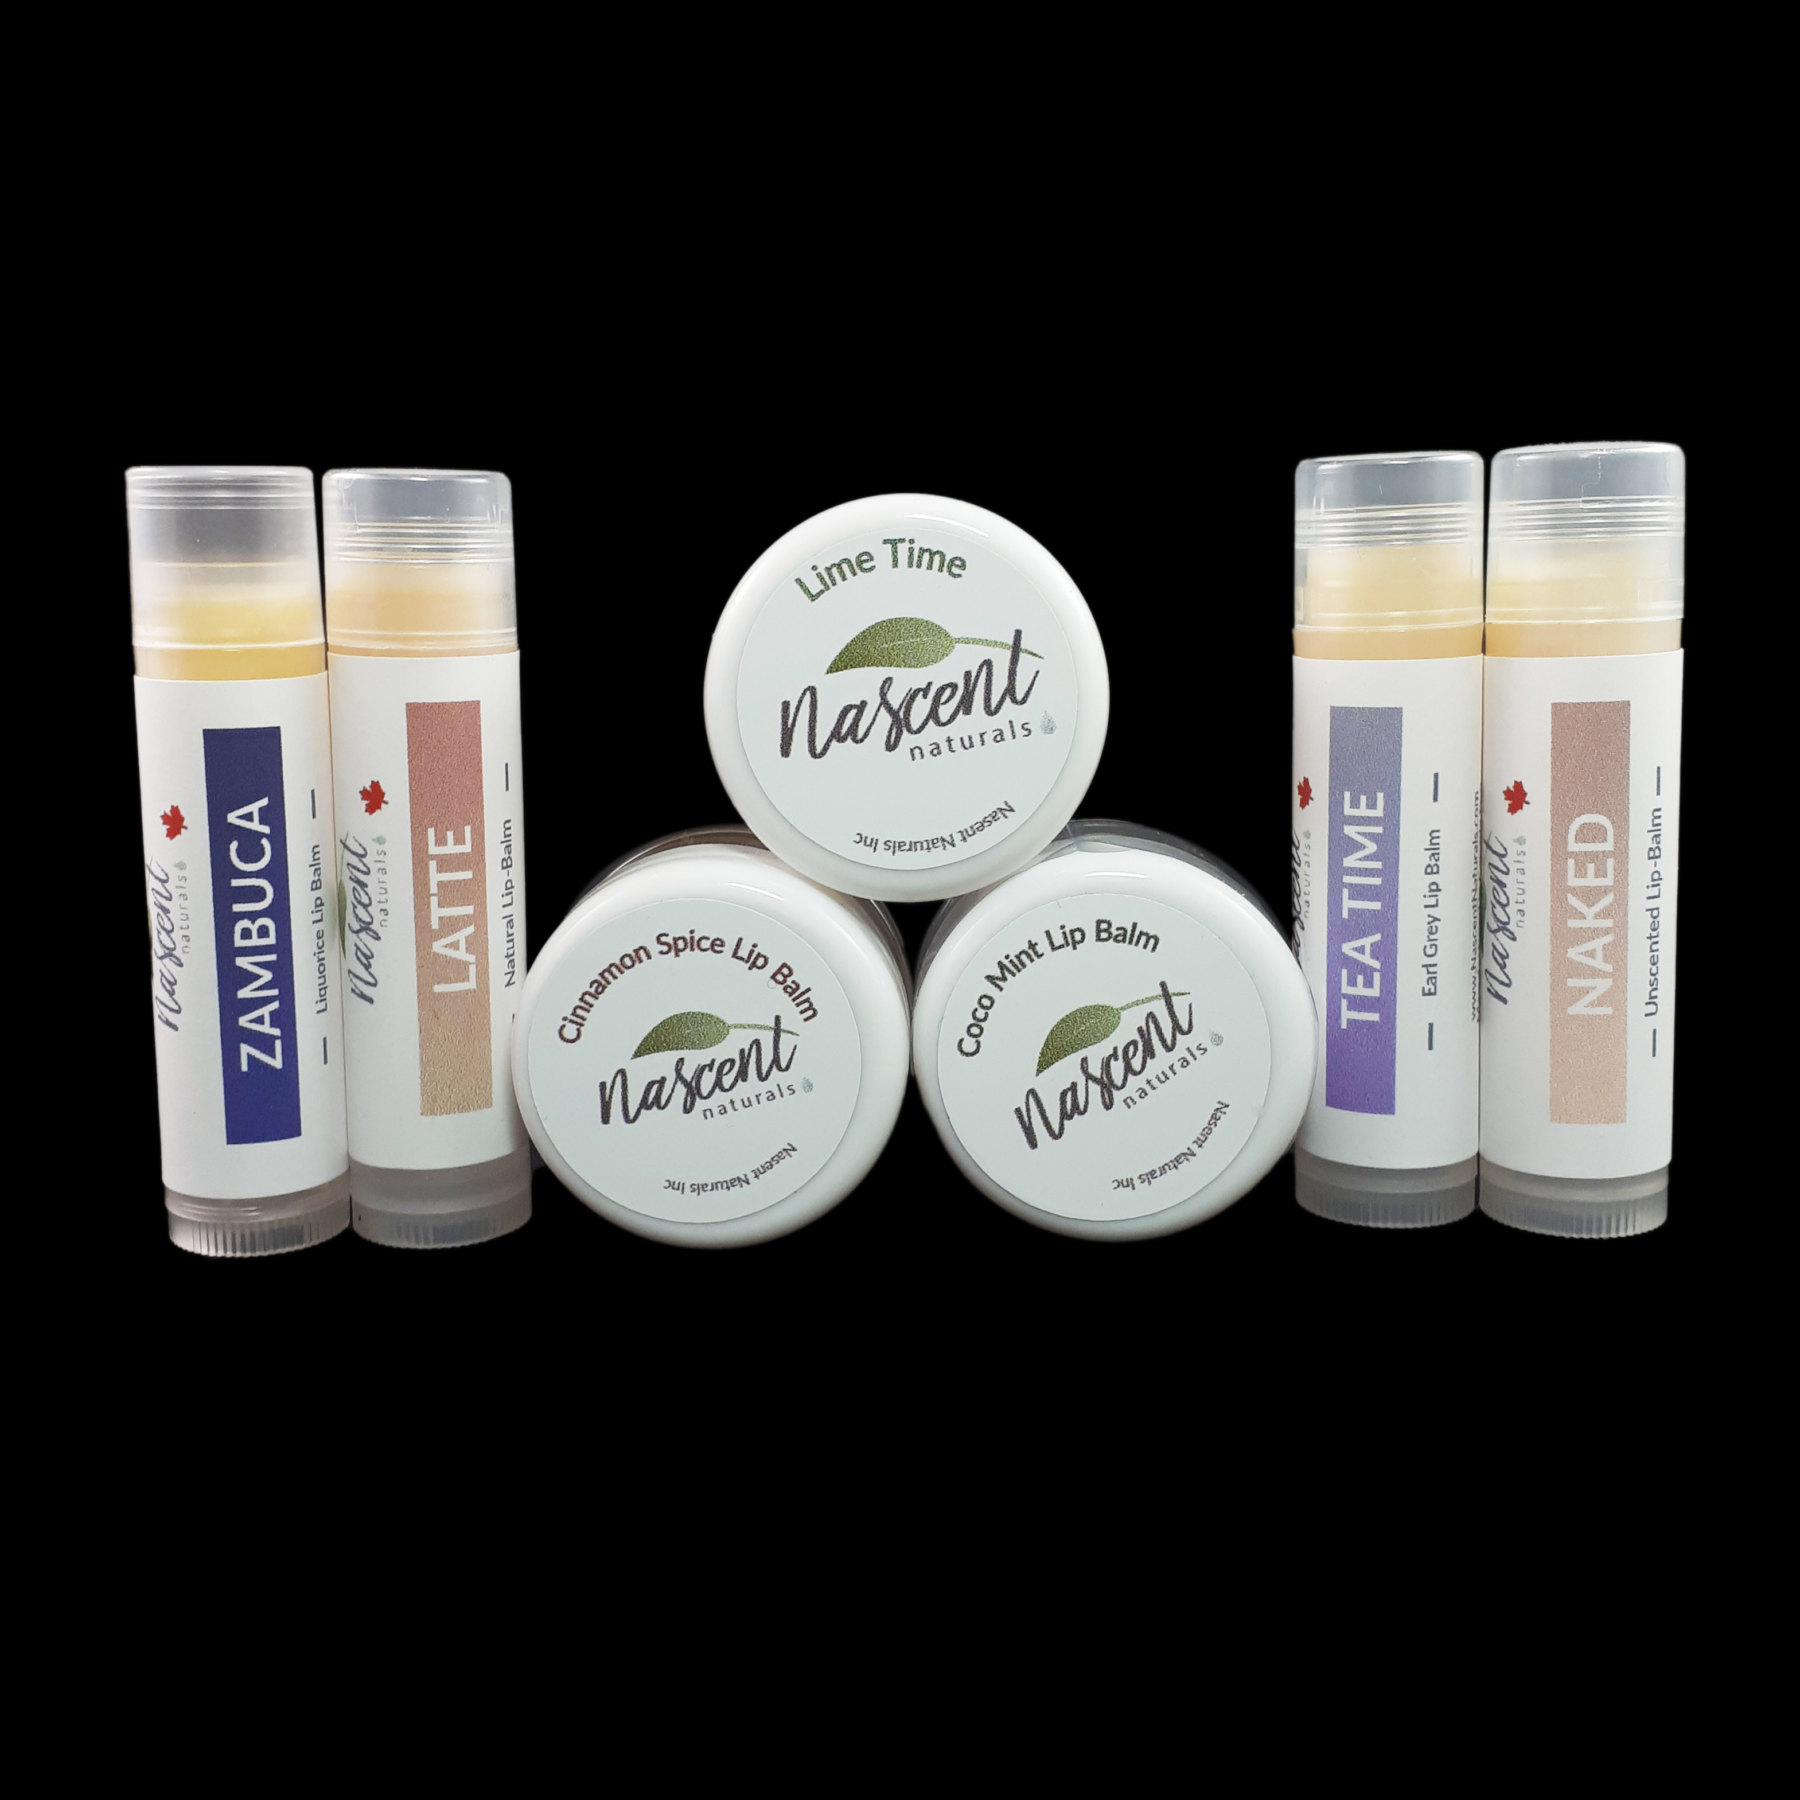 A pyramid of three lip balm jars with two tube lip balms on either side of the pyramid